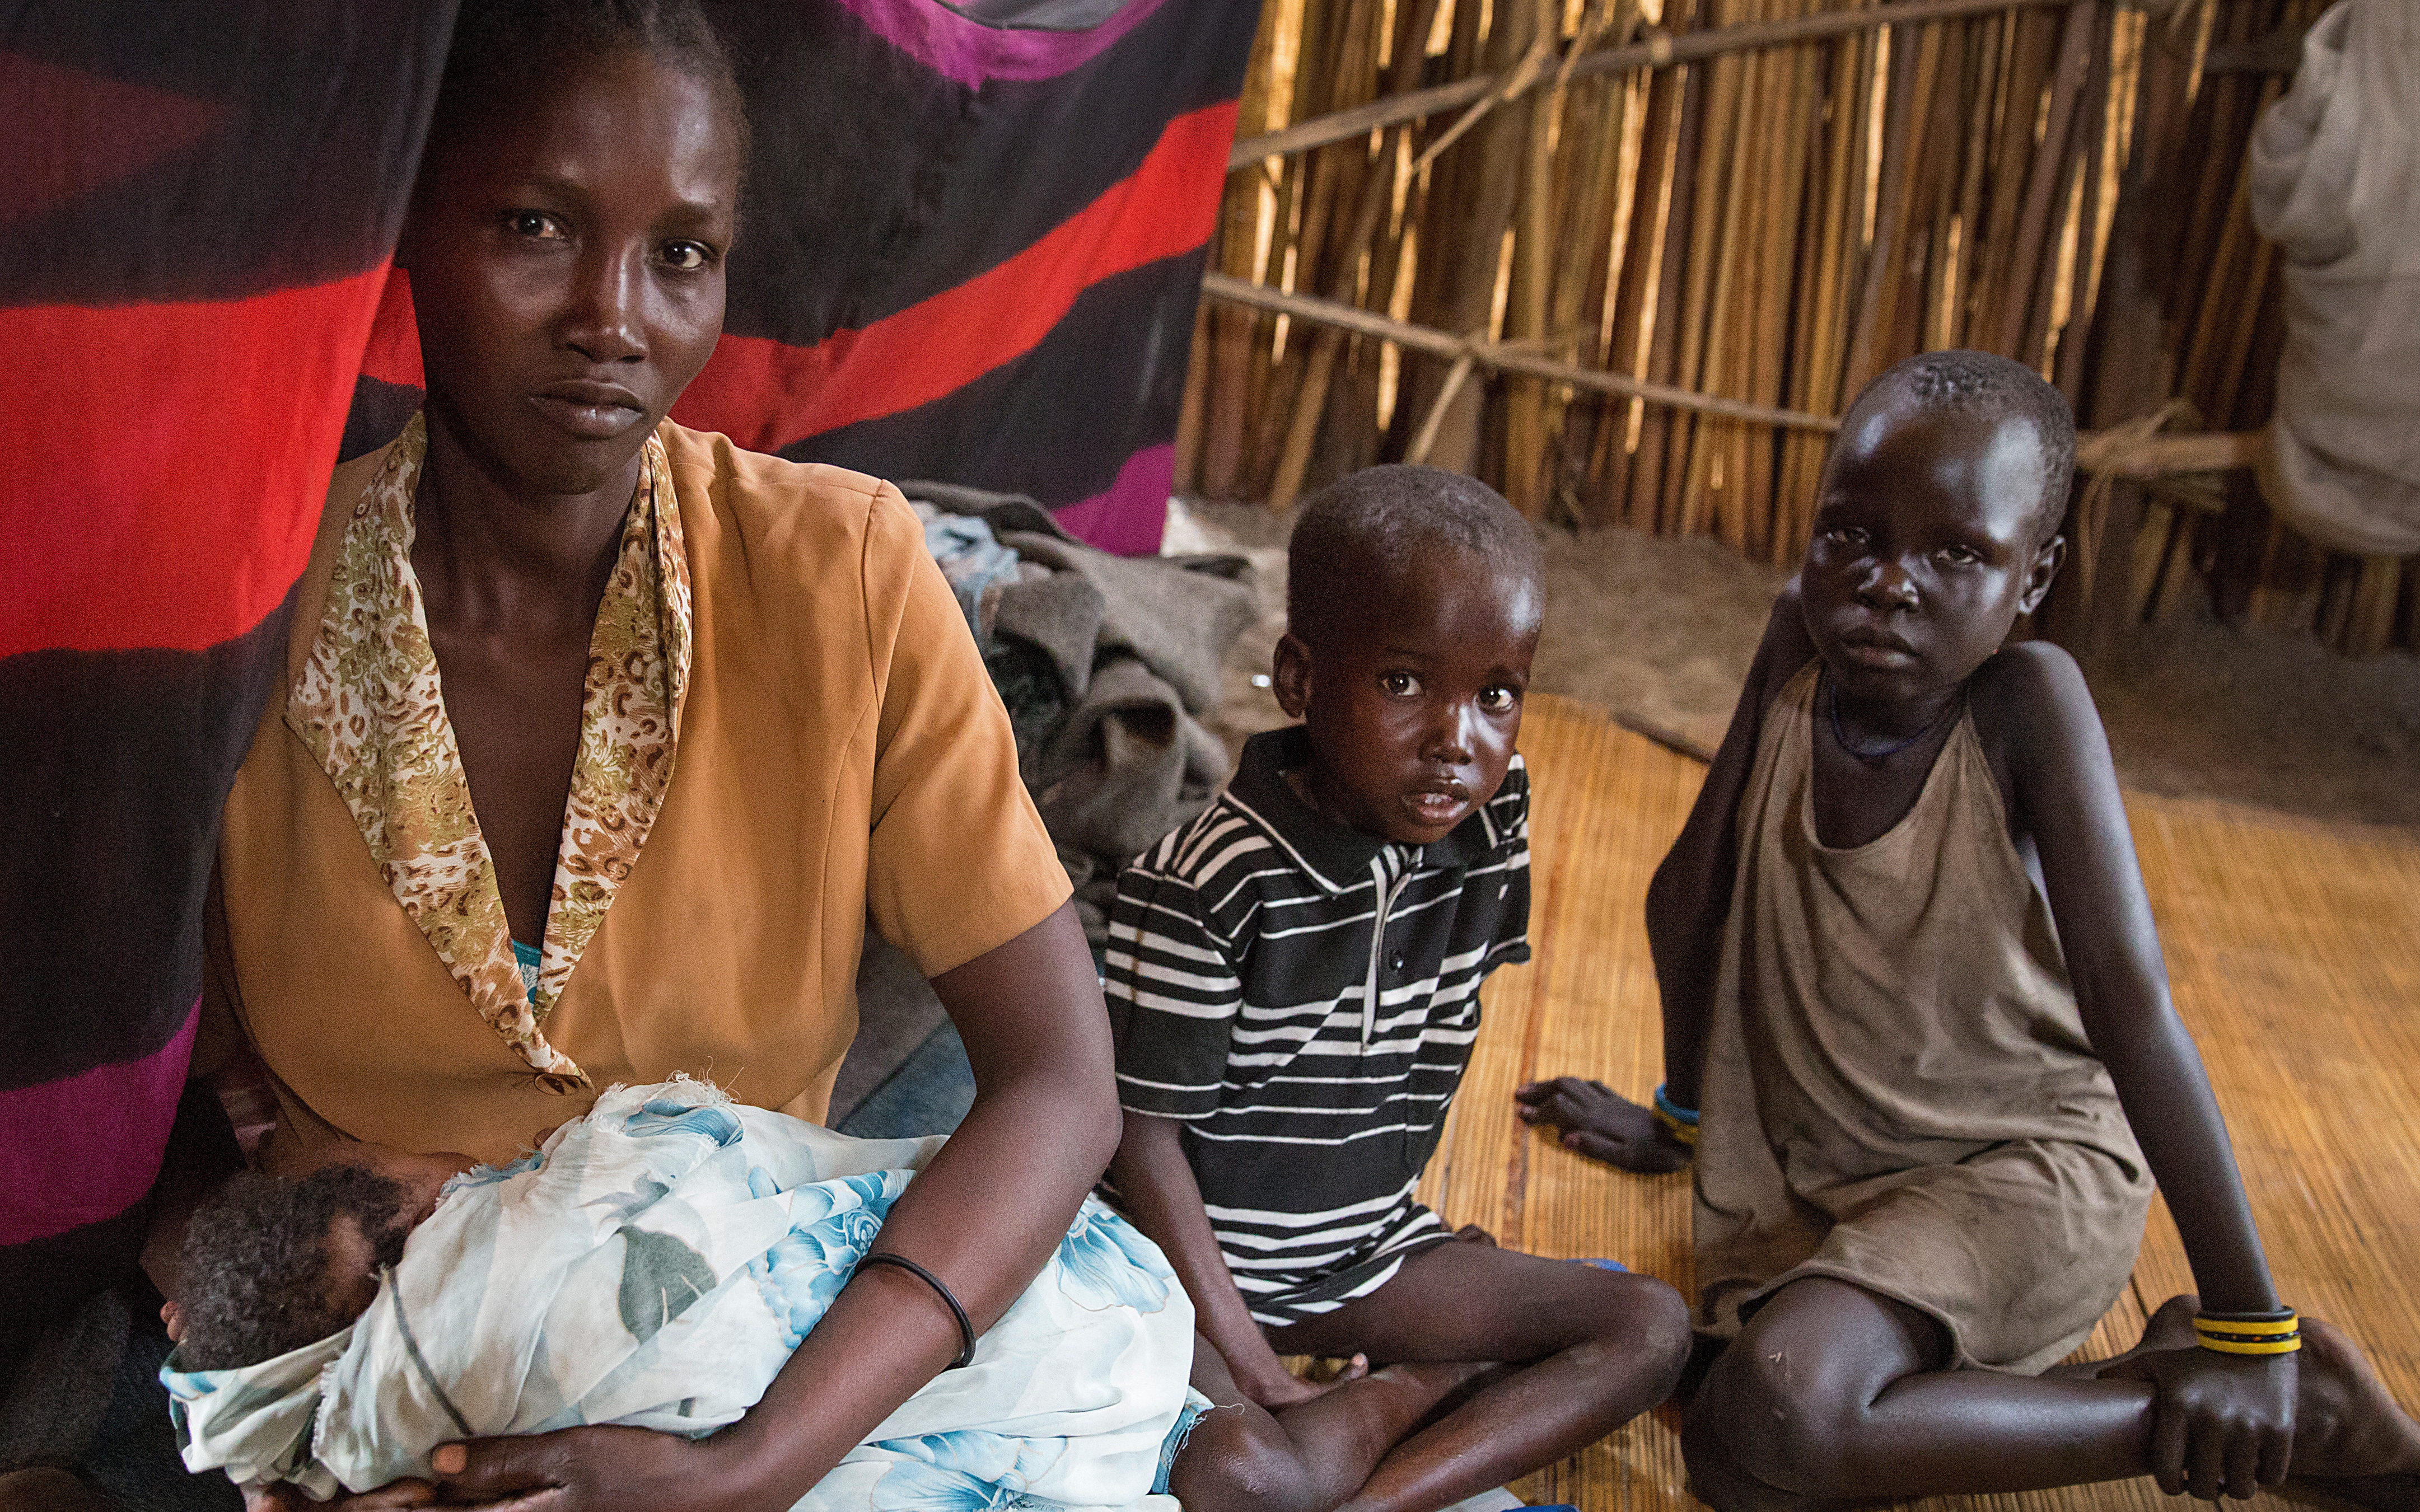 Idil and her children in their temporary home in Unity State, South Sudan